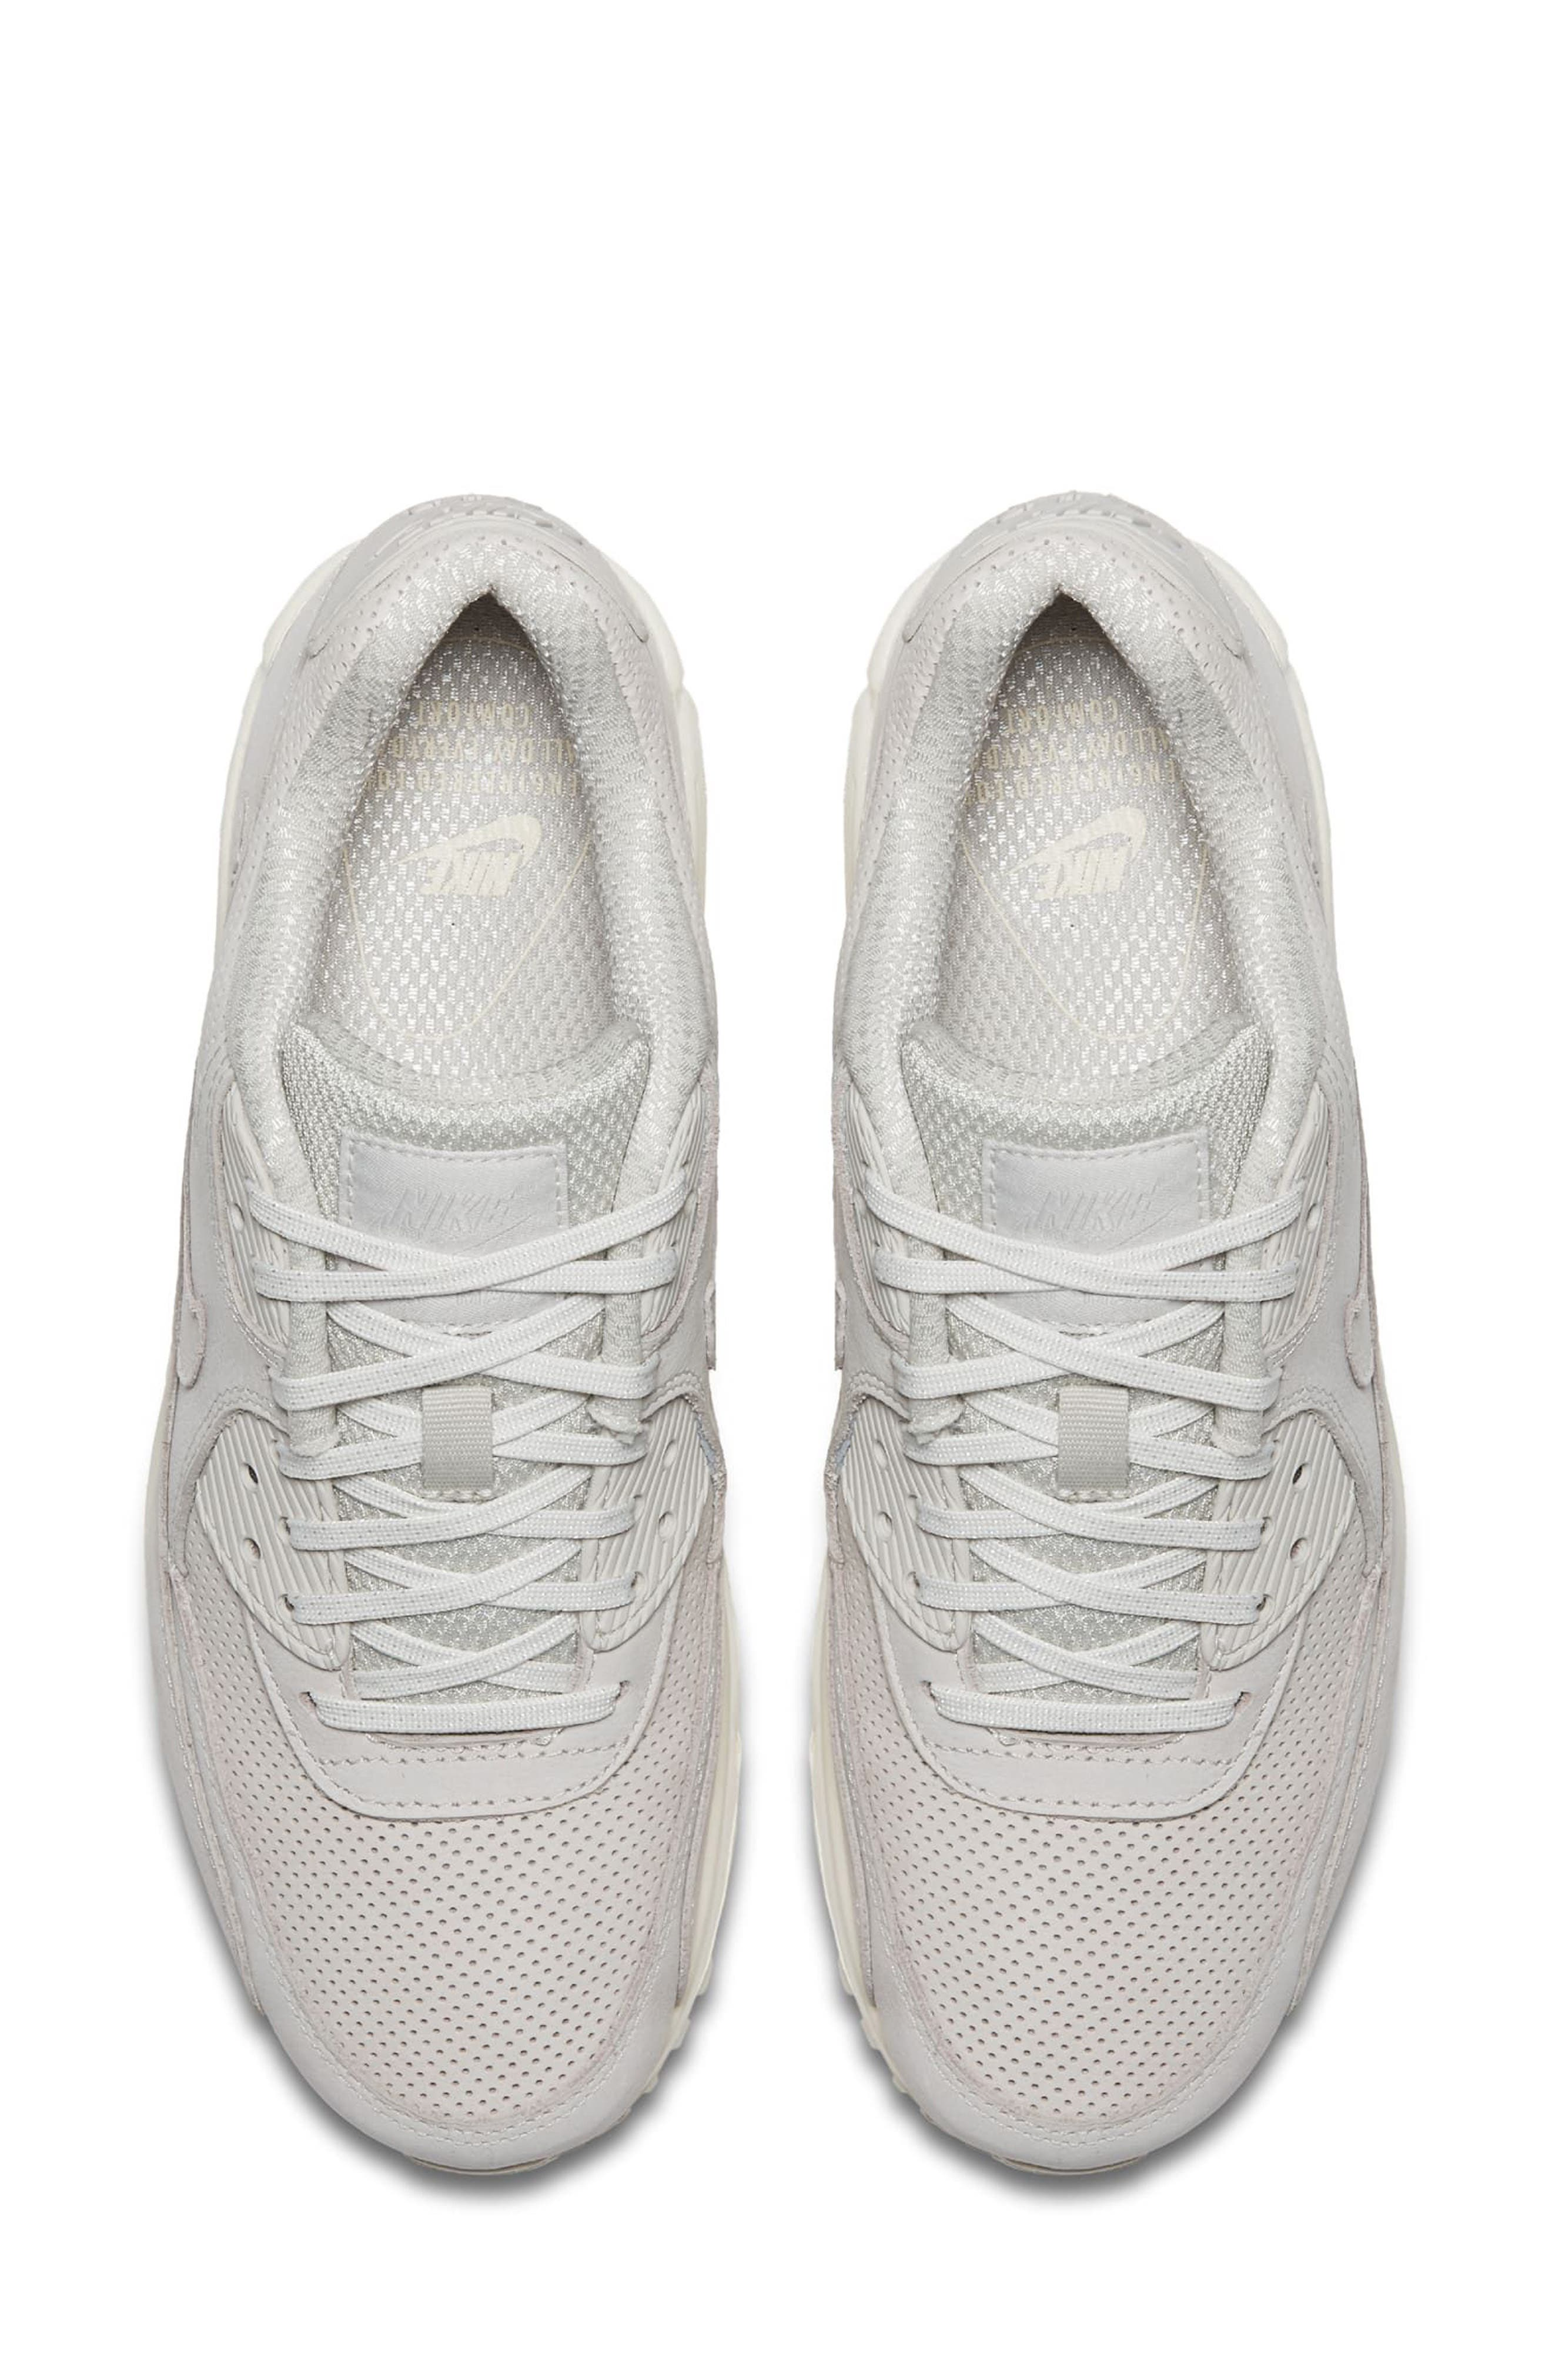 Alternate Image 3  - Nike Air Max 90 Pinnacle Sneaker (Women's)